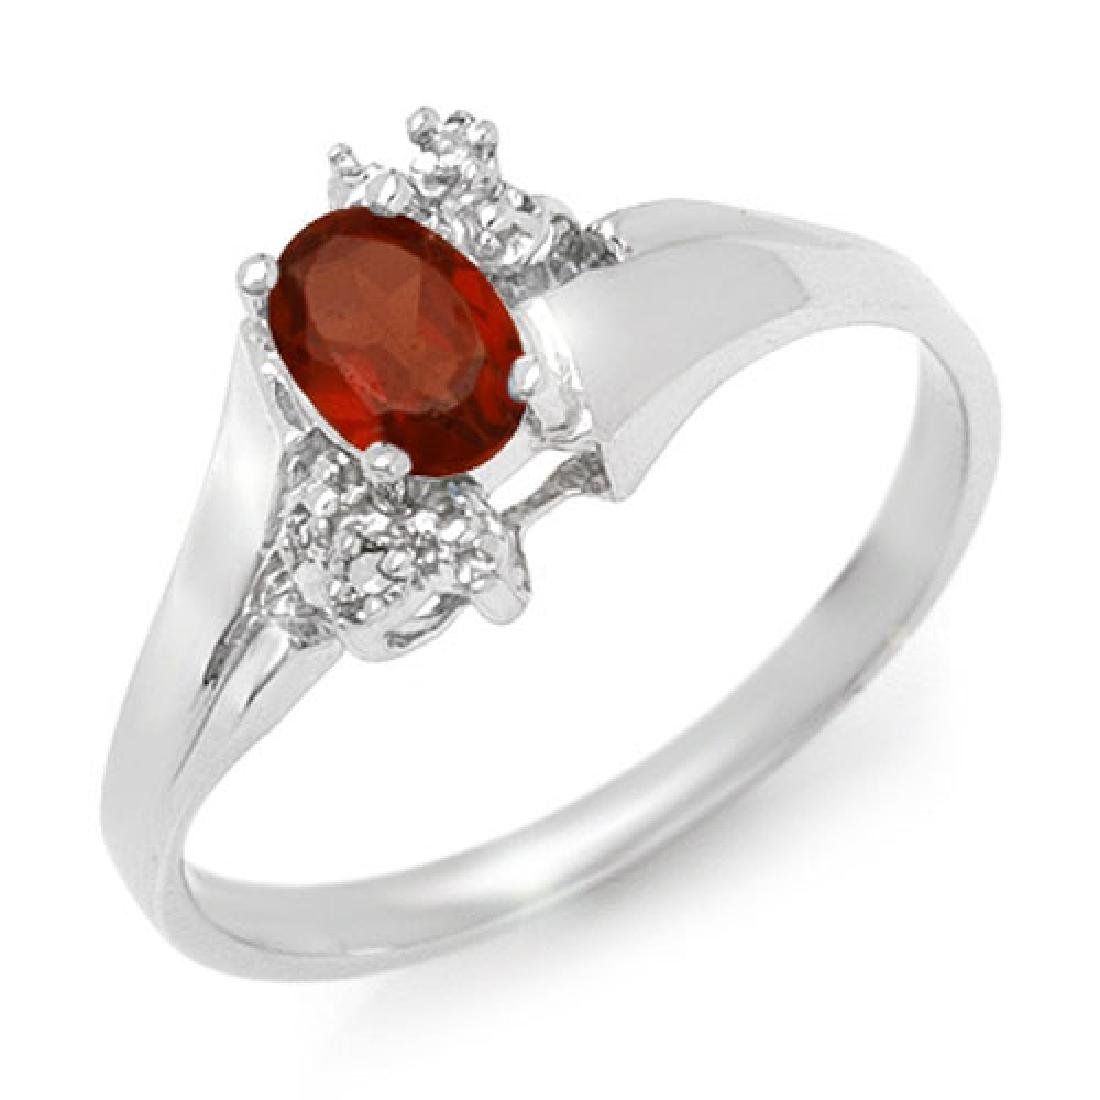 0.52 CTW Garnet & Diamond Ring 10K White Gold